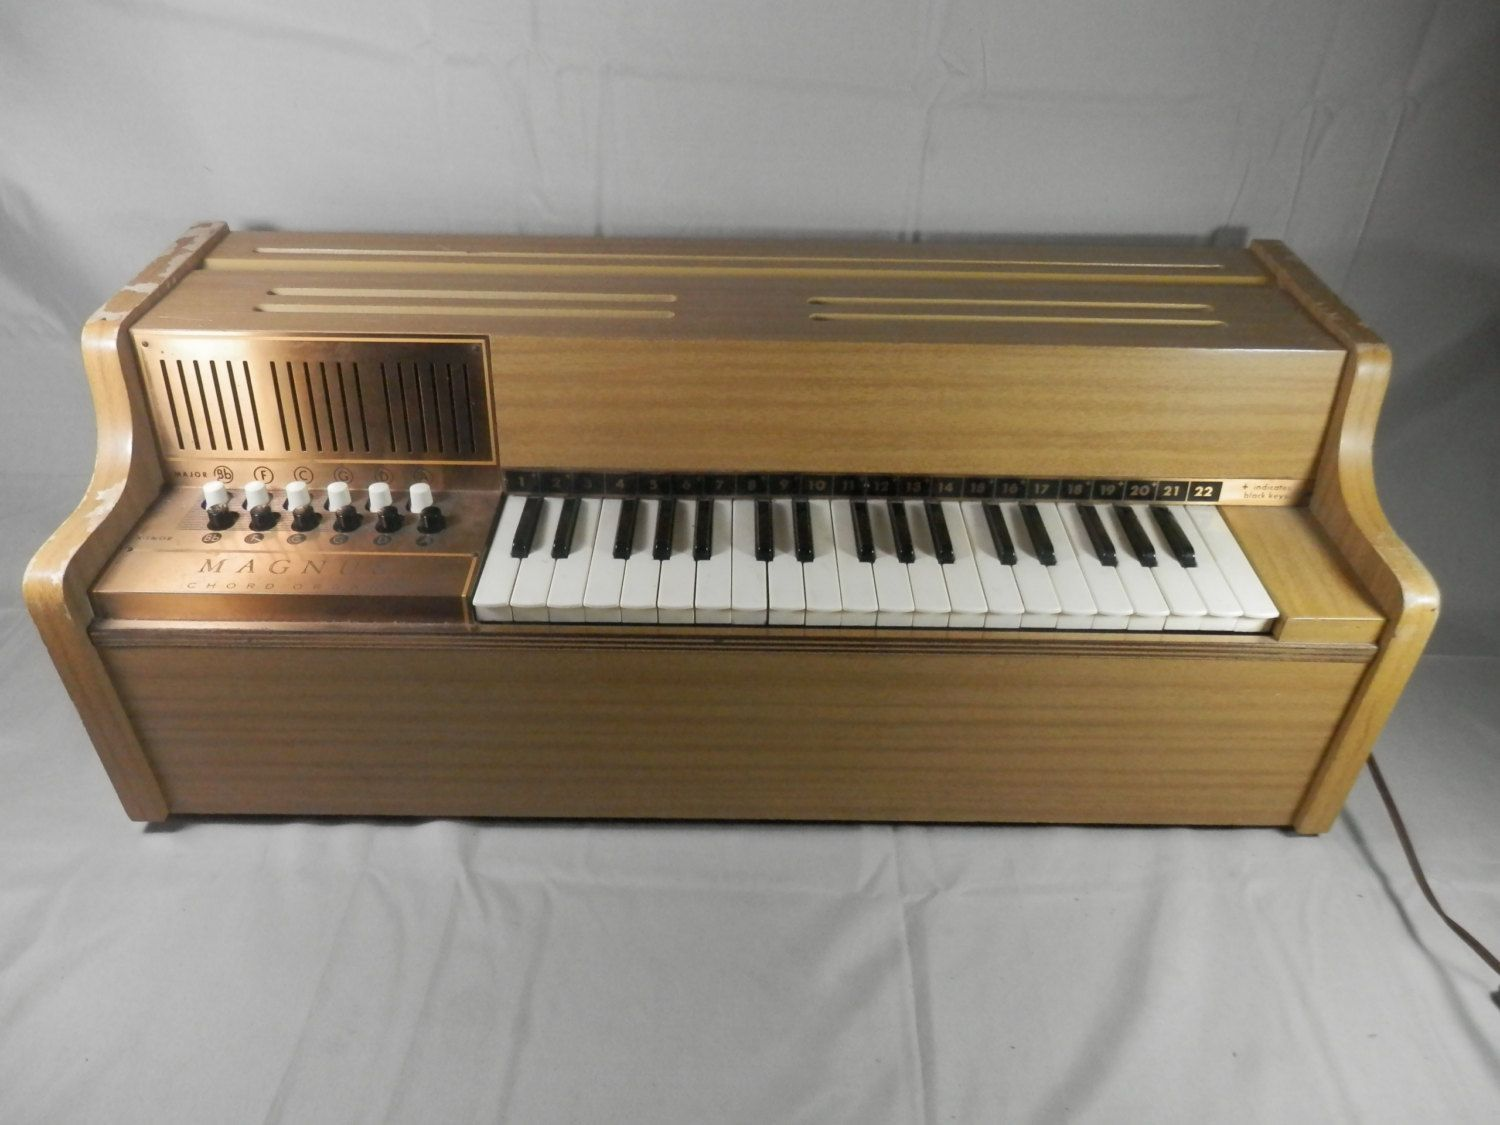 Vintage Magnus Chord Organ Model 500 Working Table Top Electric Magnus Organ Corporation Wooden Organ Piano Practice Electronic Toy Piano Practice Piano Electronic Toys